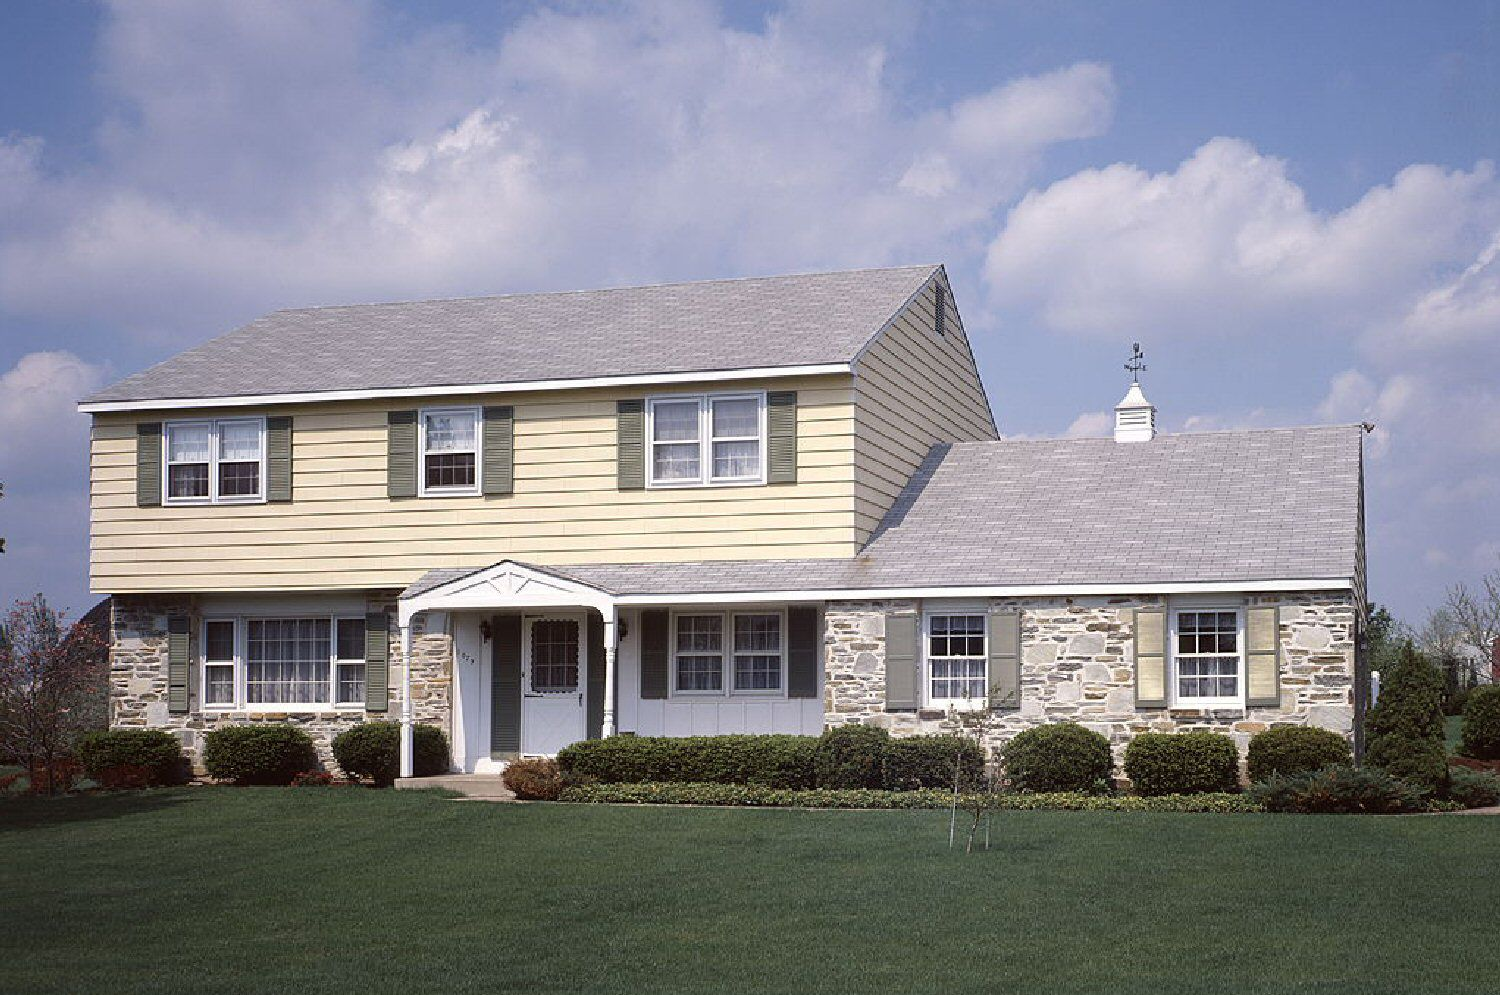 Light shade for home paint colors decorate my house - Homeowners Ask About Exterior Paint Colors